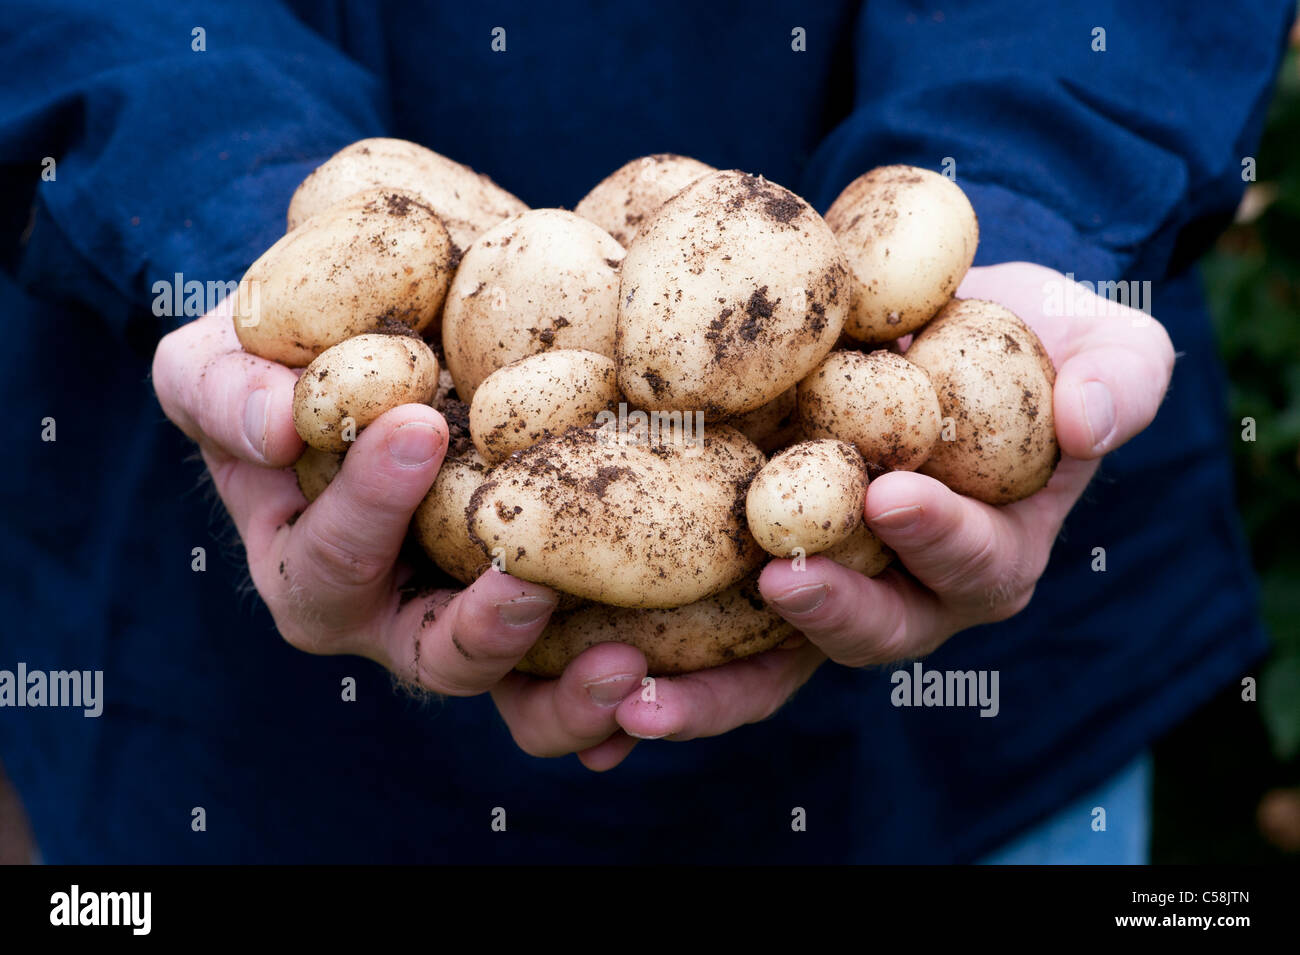 Gardeners Hands holding freshly dug 'Sharpes Express' Potatoes - Stock Image